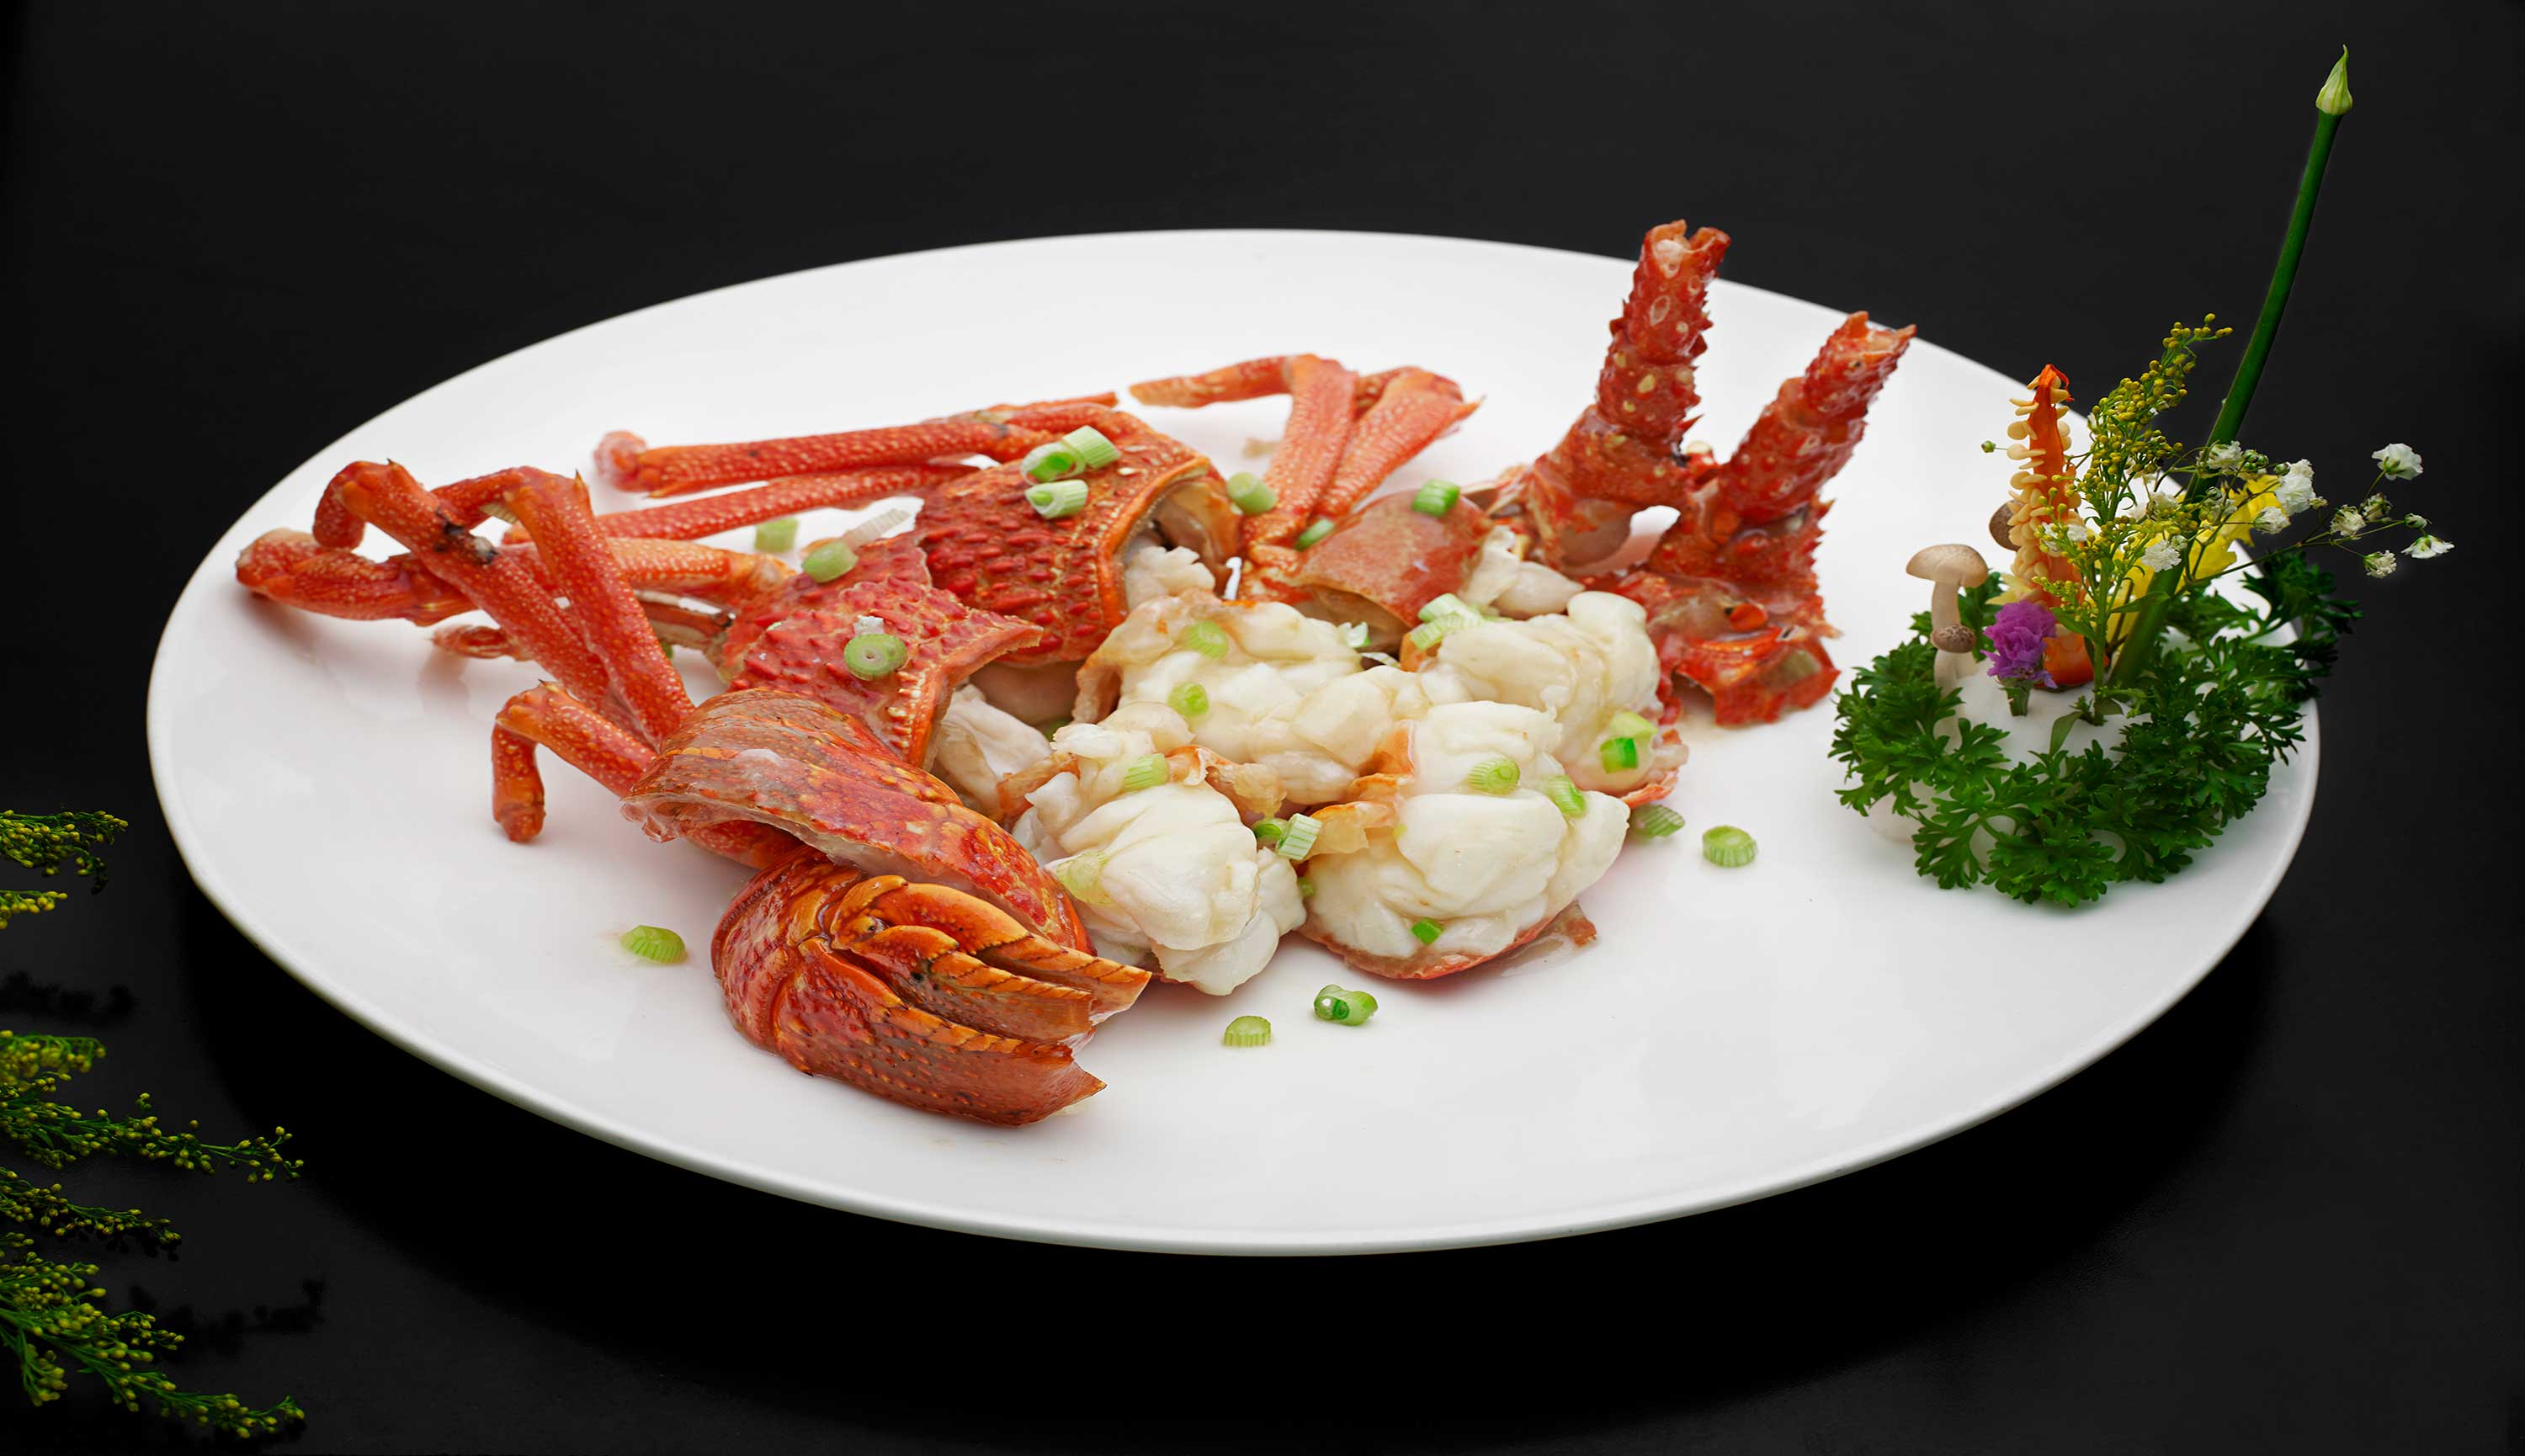 Imperial Treasure - Australian Lobster Baked with Gravy